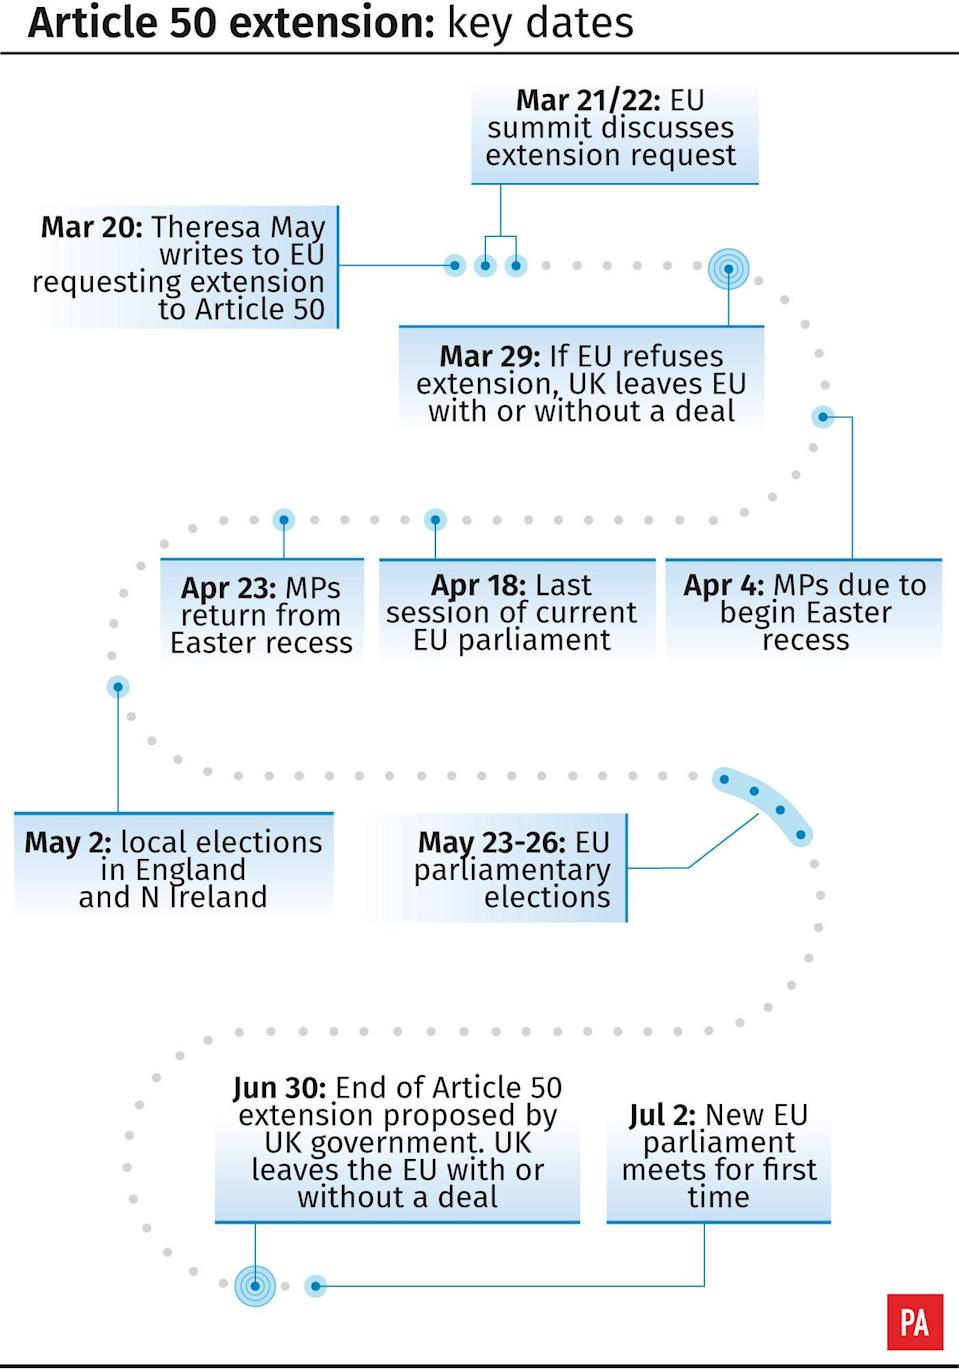 <em>The key dates in the Article 50 extension (PA)</em>